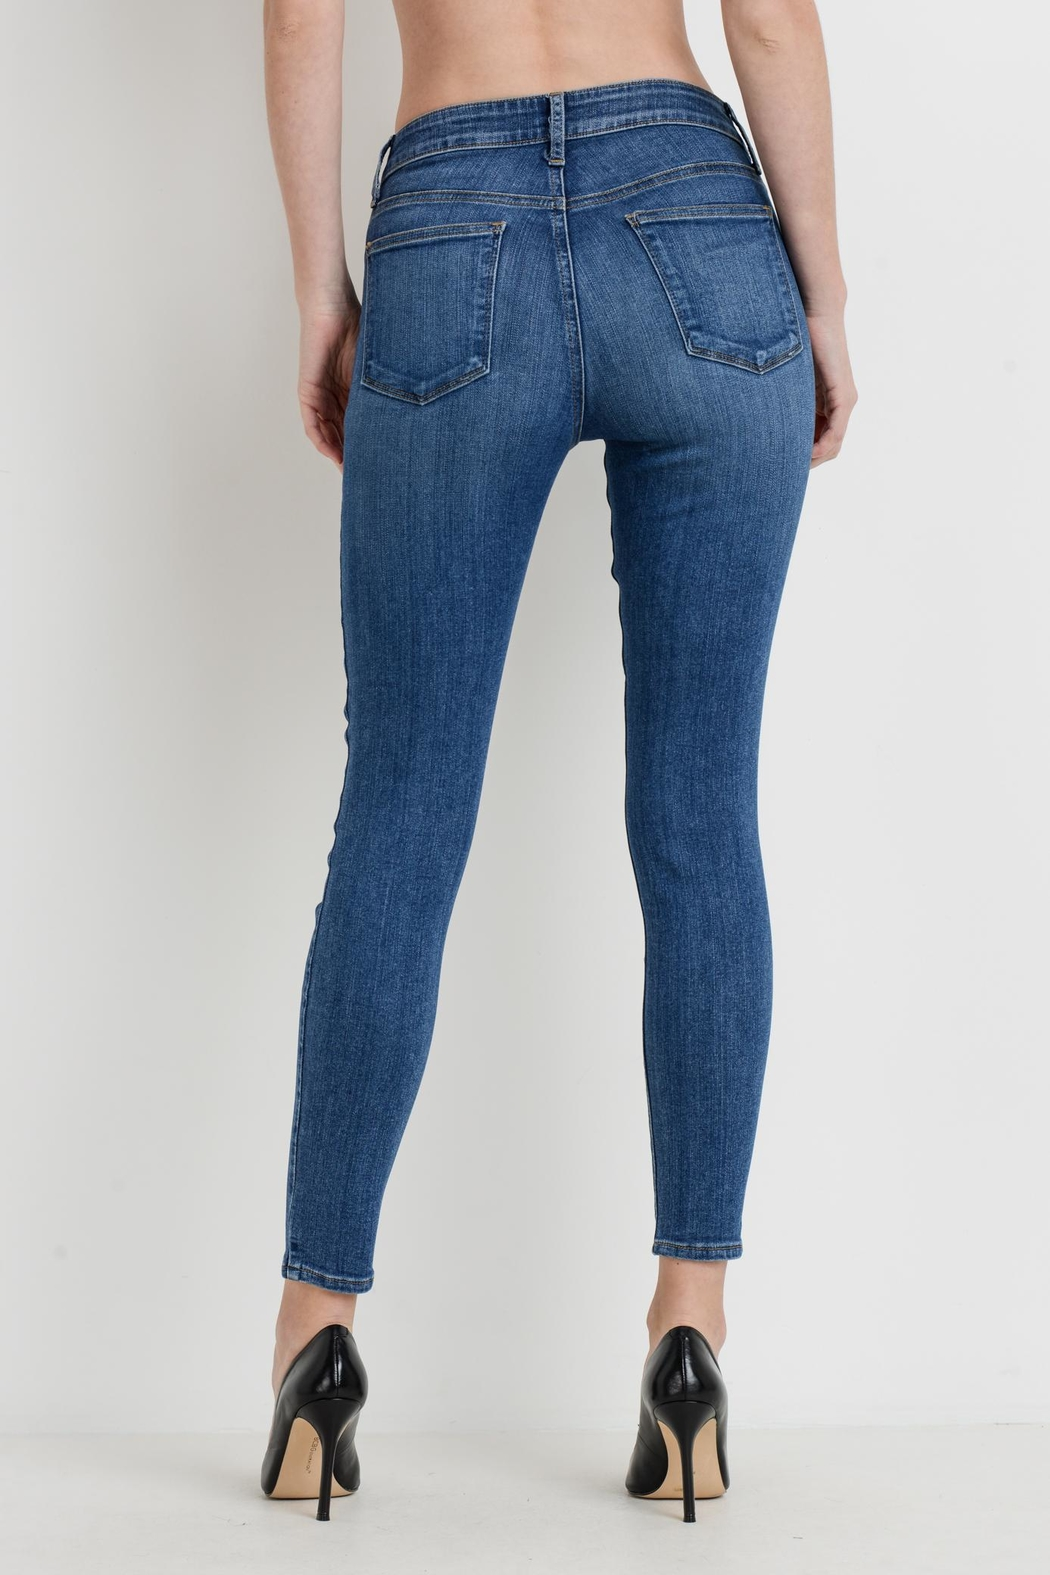 just black Stretch Skinny Jeans - Side Cropped Image